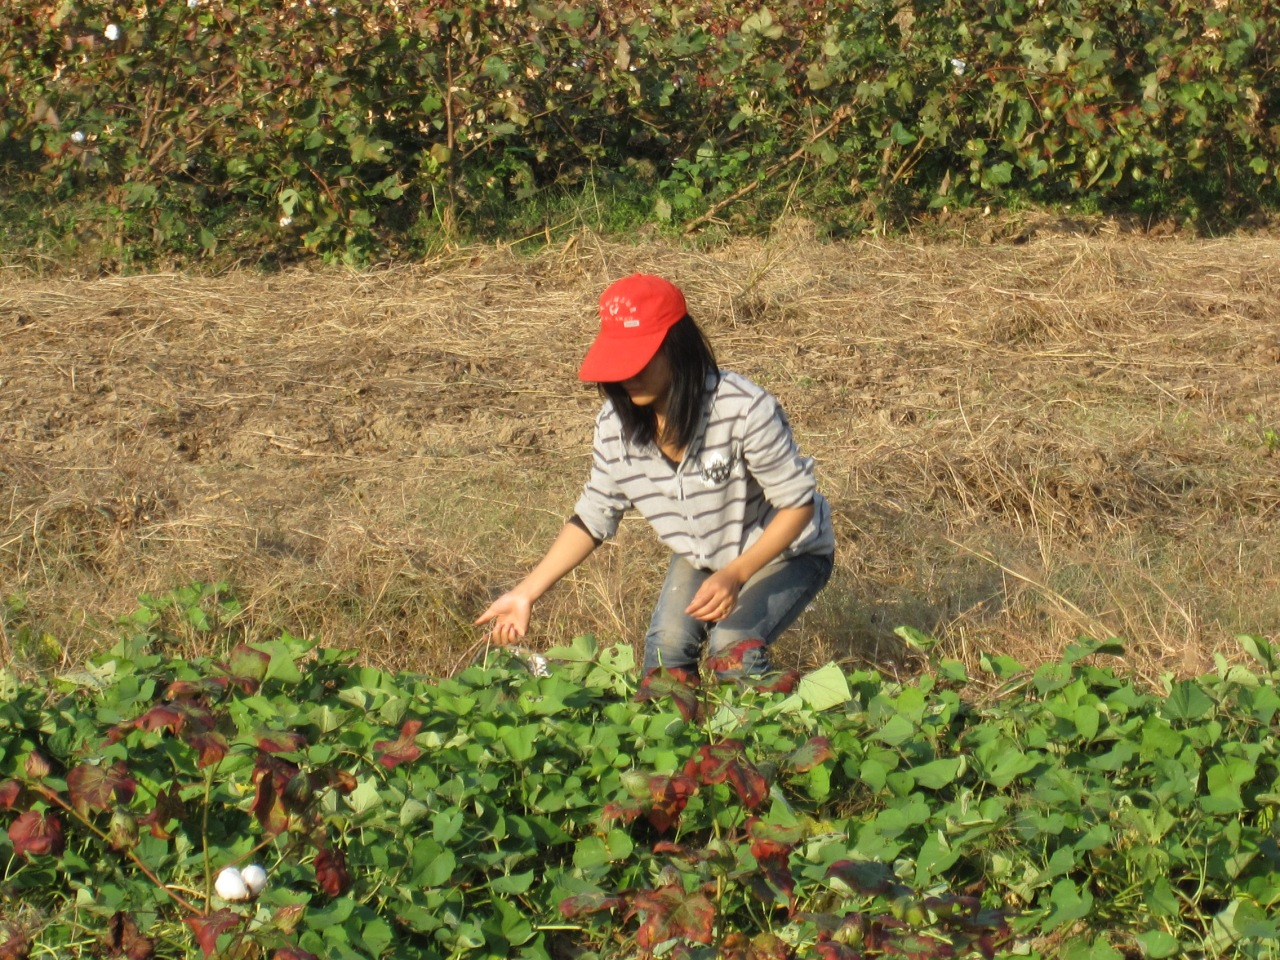 A local girl picking cotton